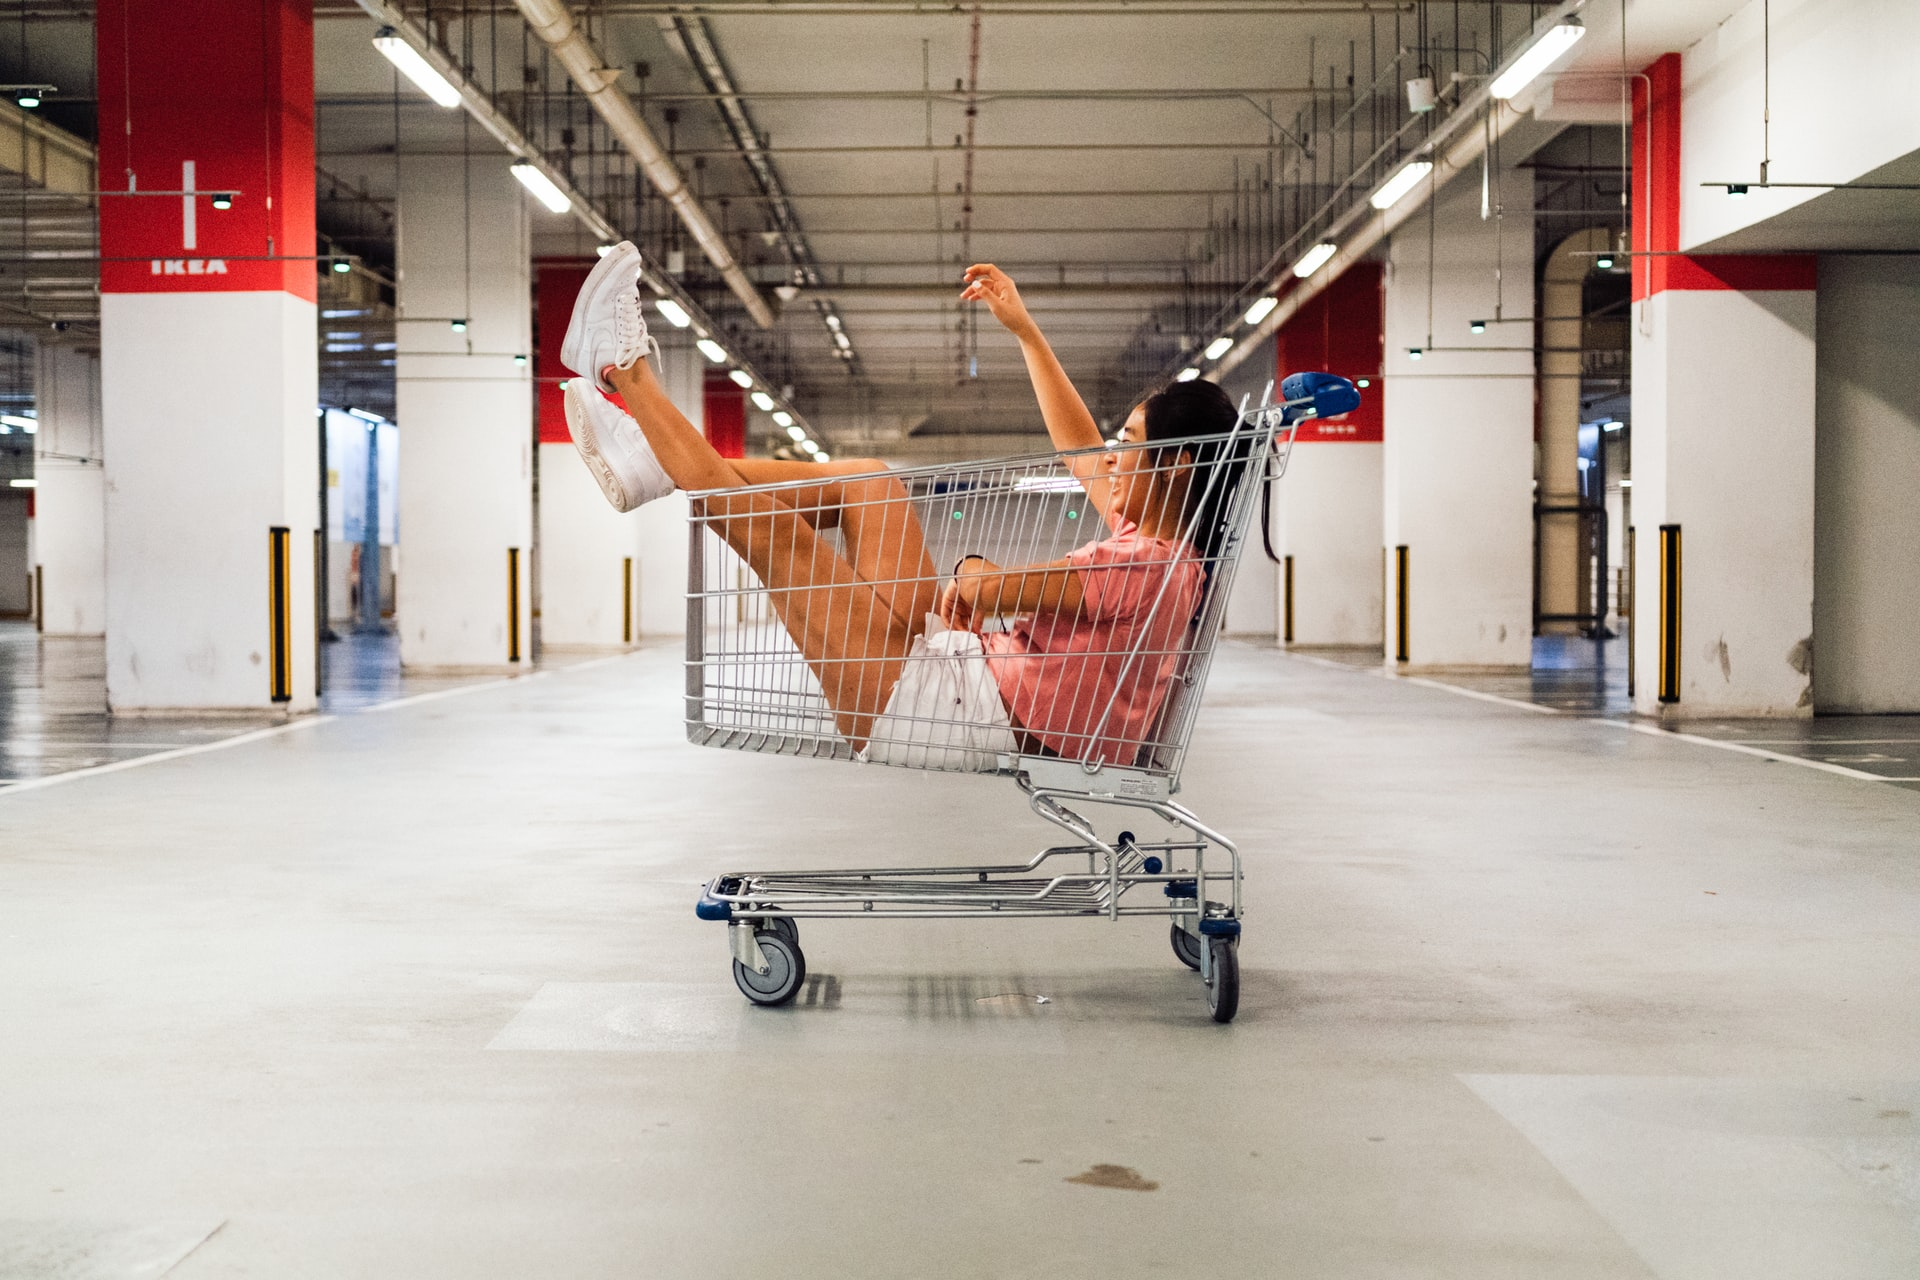 The Art of Haggling: 5 Tips for Bargain Shopping